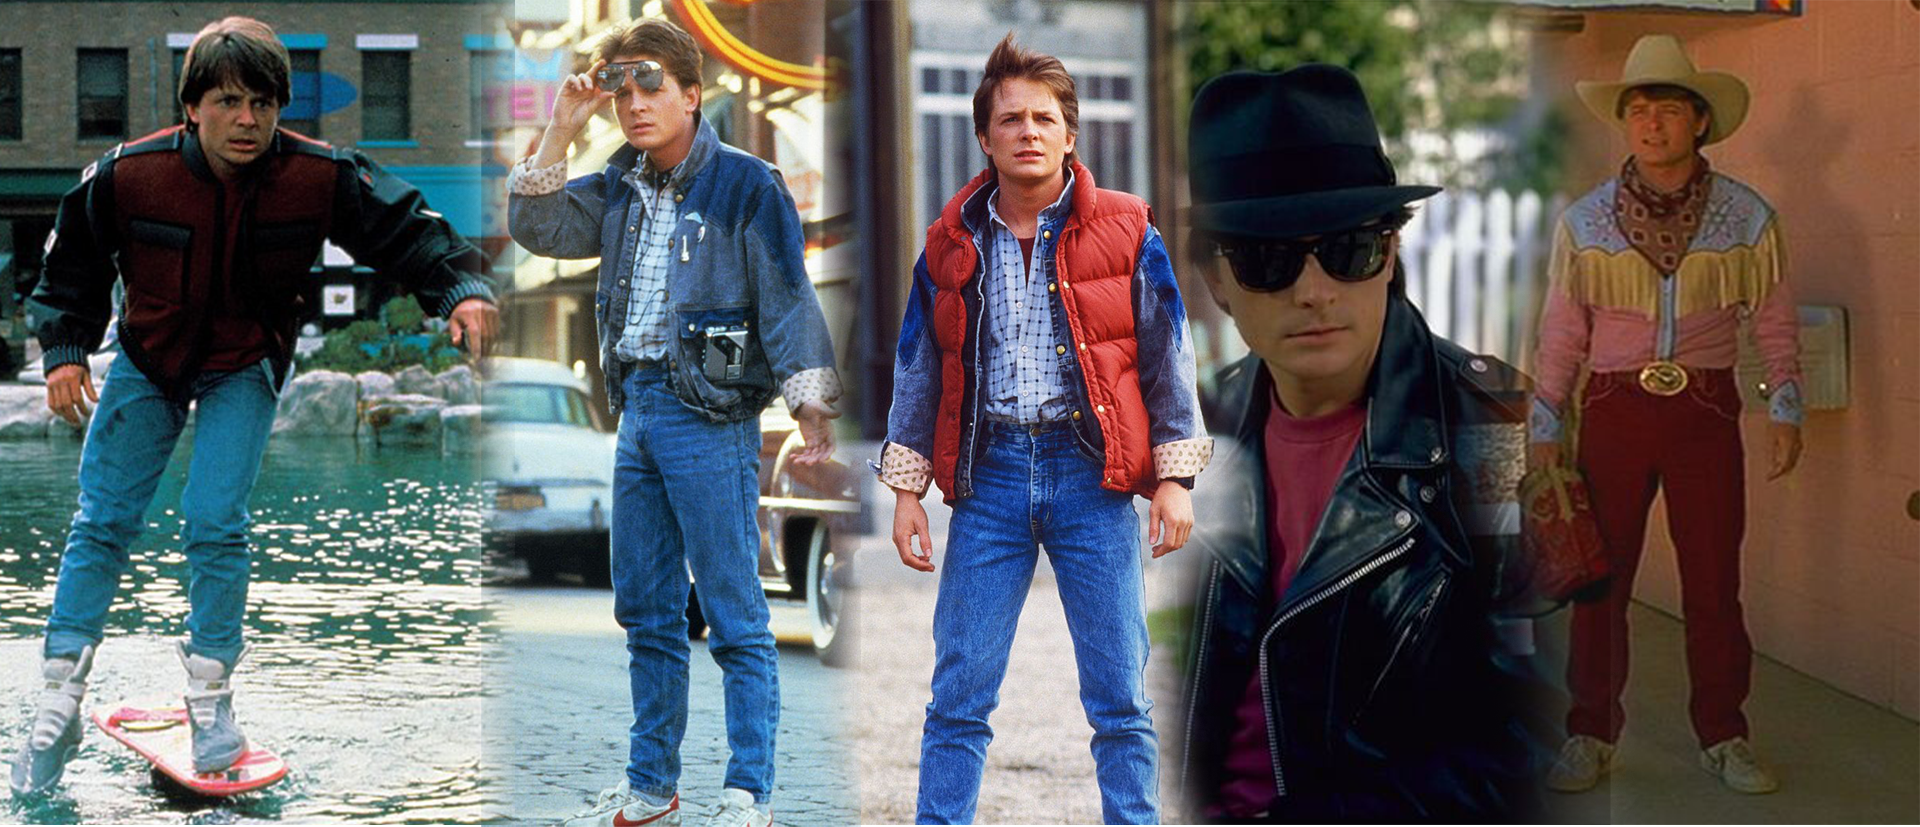 Please Add Marty Mcfly As A Survivor Mcfly Marty Mcfly Marty Mcfly Costume [ 827 x 1920 Pixel ]